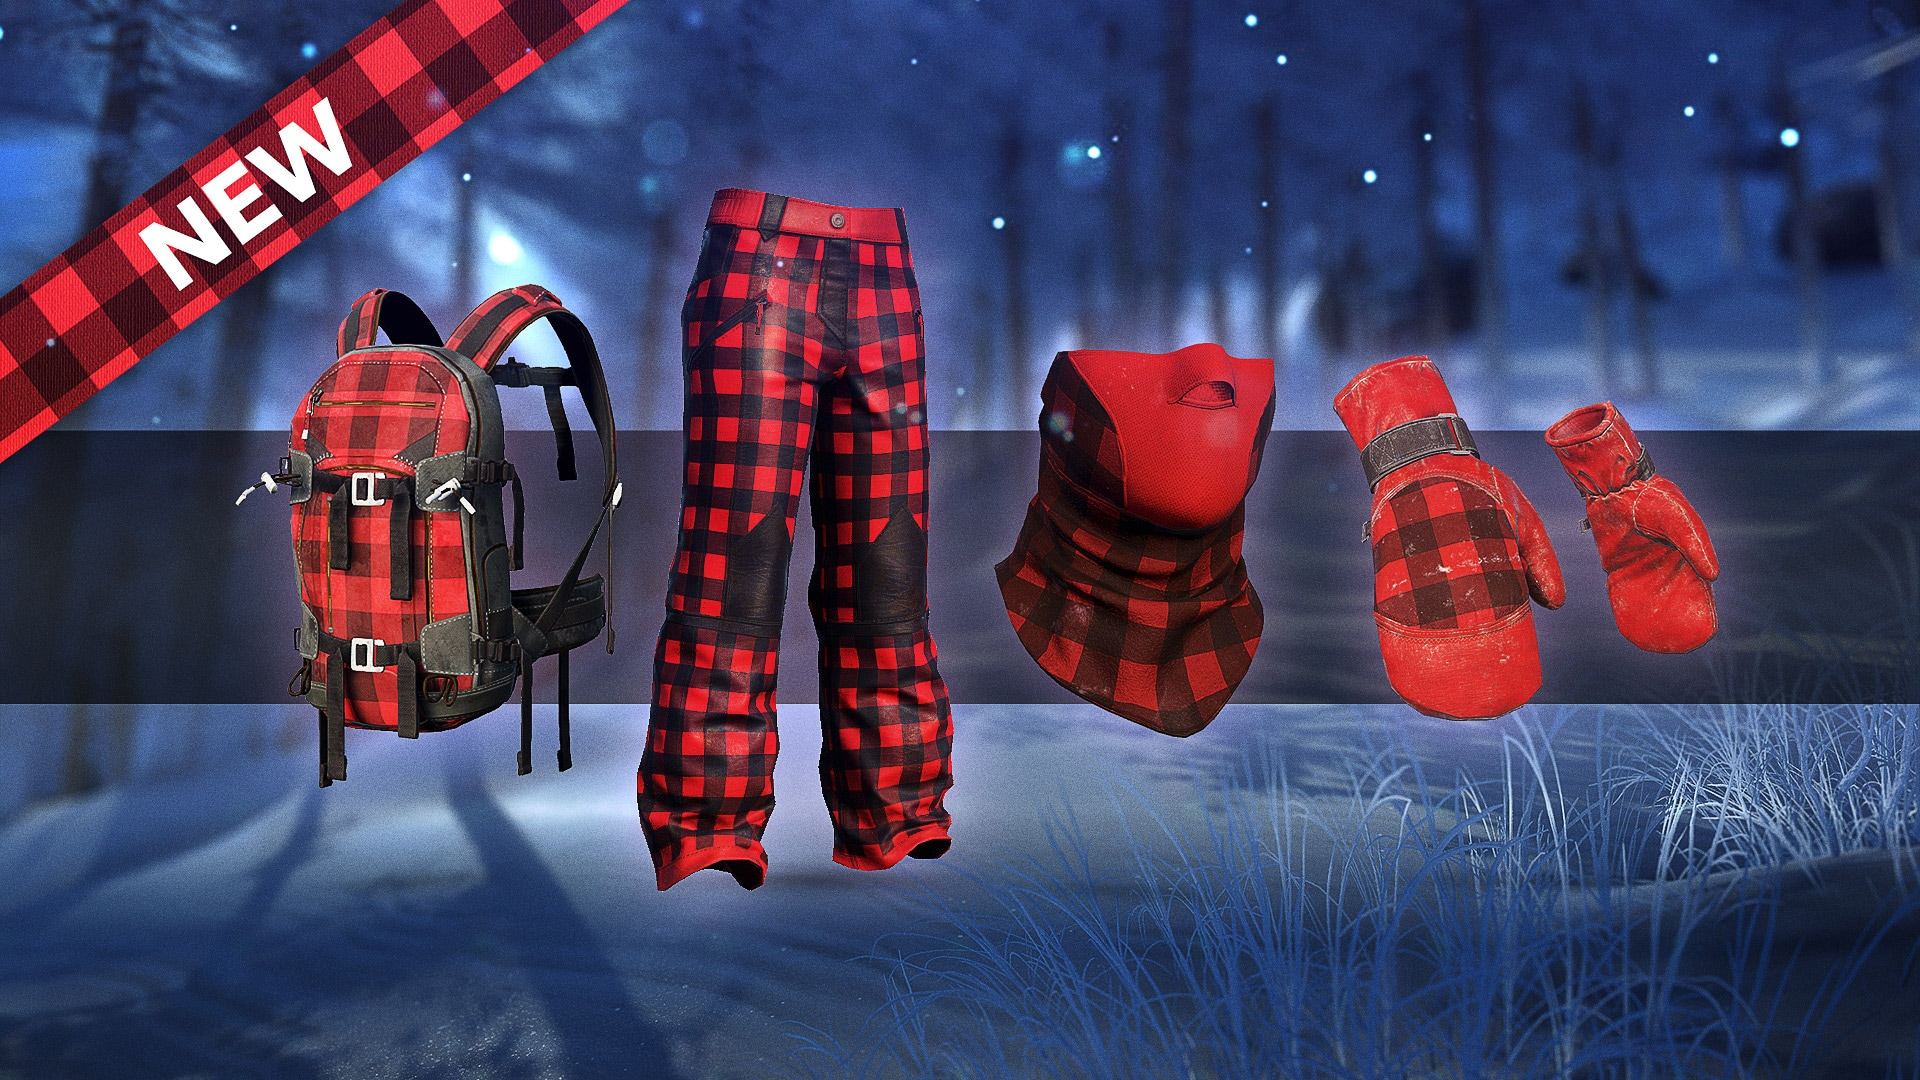 [2017-02-15] News - New Item / Lumberjcak Gear - HEADER/THUMB